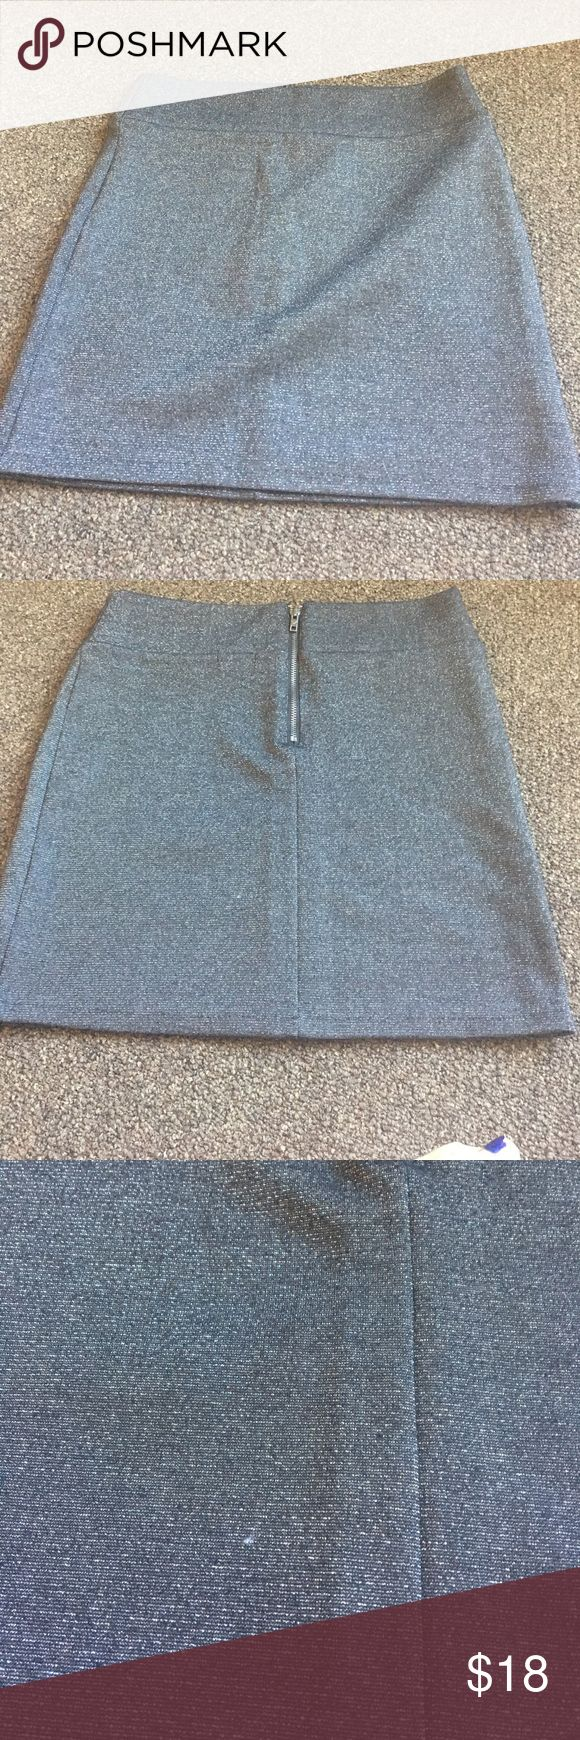 Dark grey and metallic body con mini skirt Body con skirt with back zipper detail and metallic threading. Great condition worn once. Color is darker than pictured American Eagle Outfitters Skirts Mini